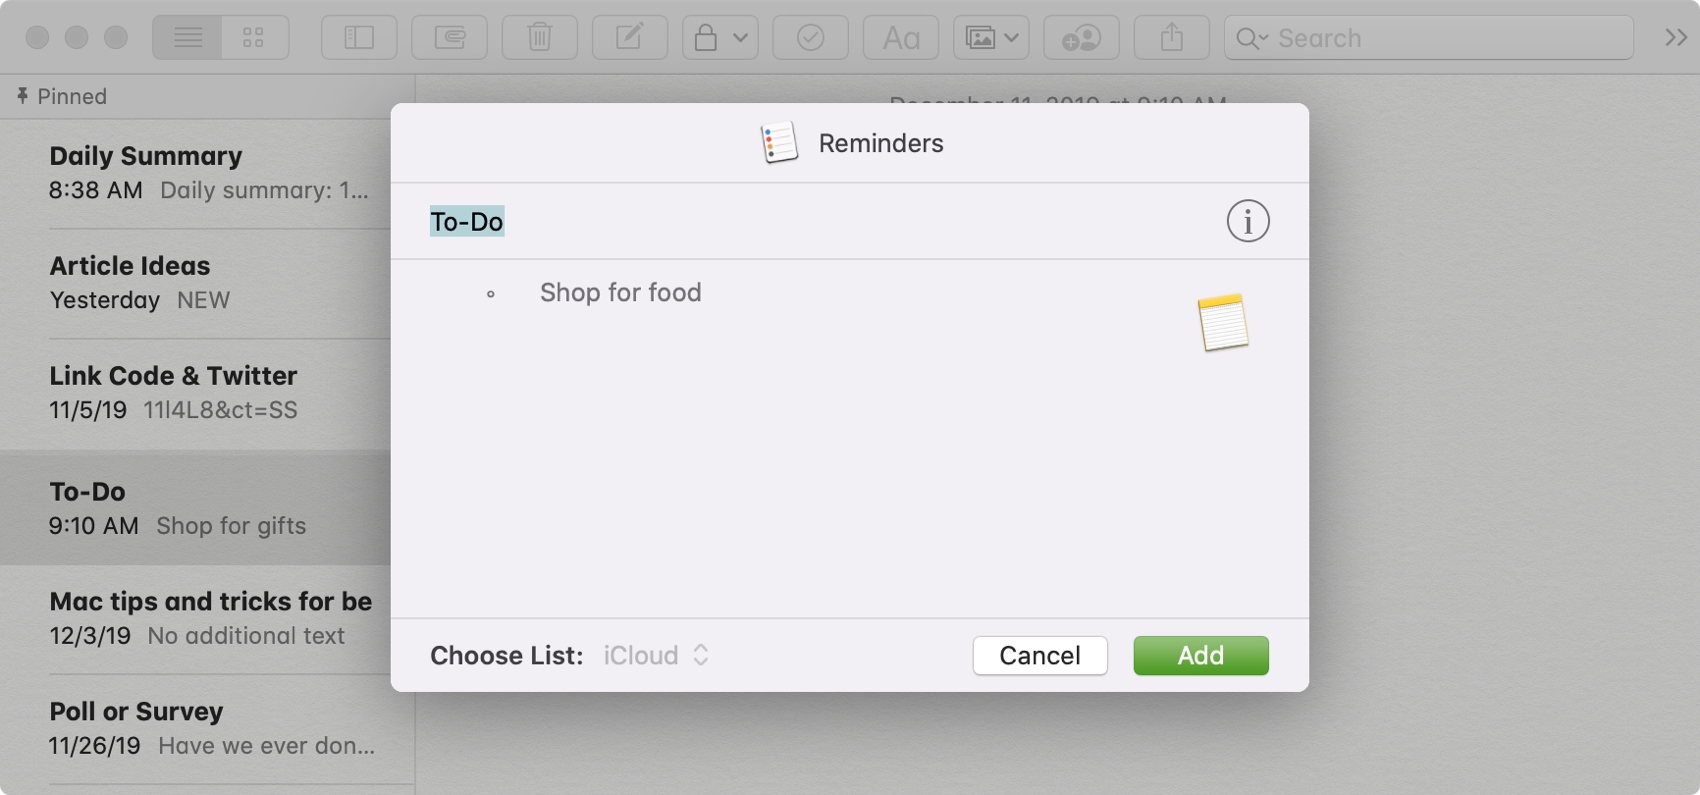 Add Part of Note as Reminder Mac